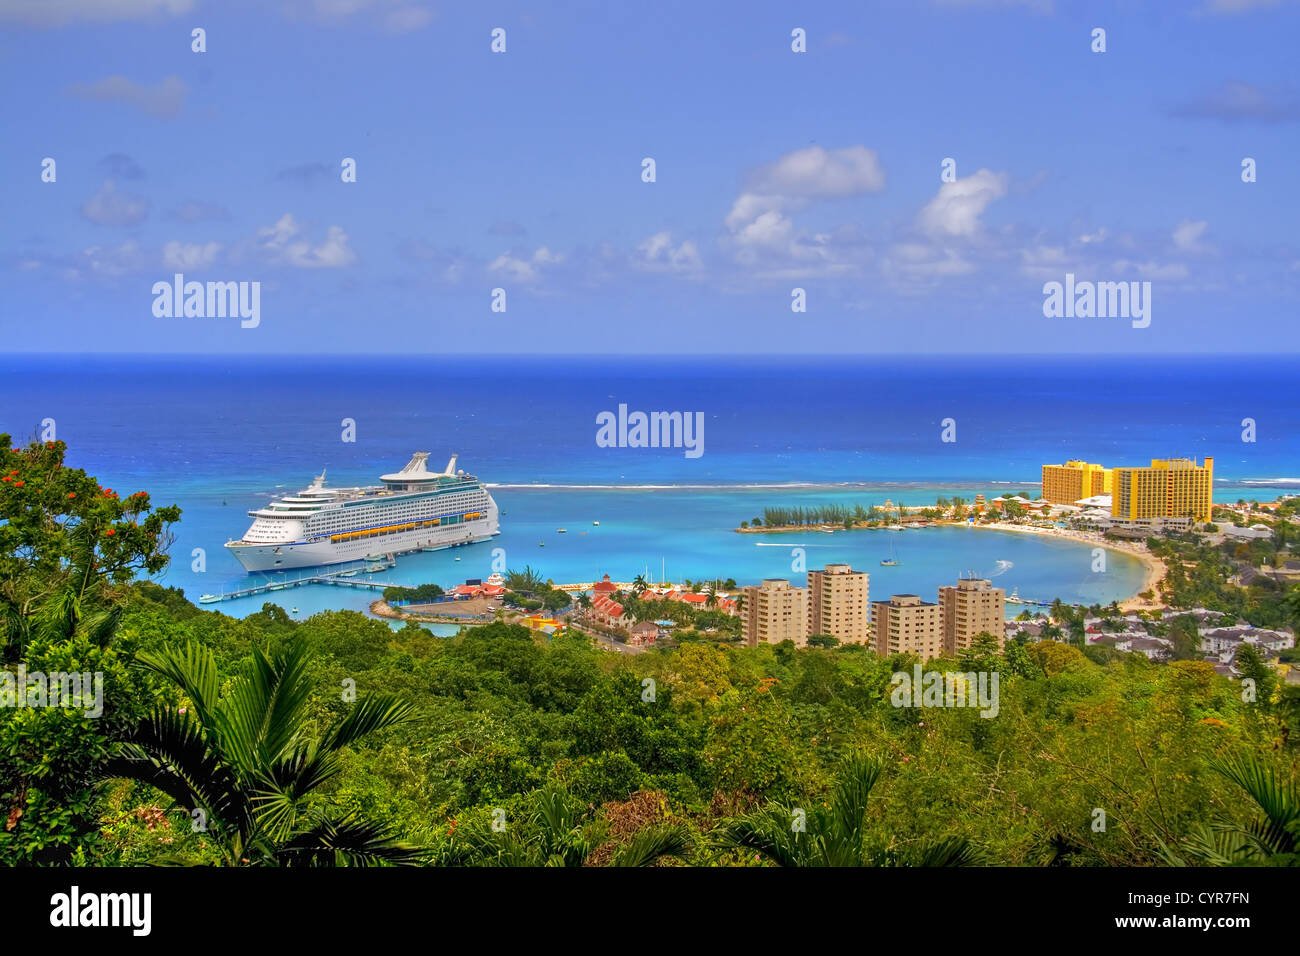 View over Ocho Rios port town, Jamaica, with anchored cruise liner - Stock Image